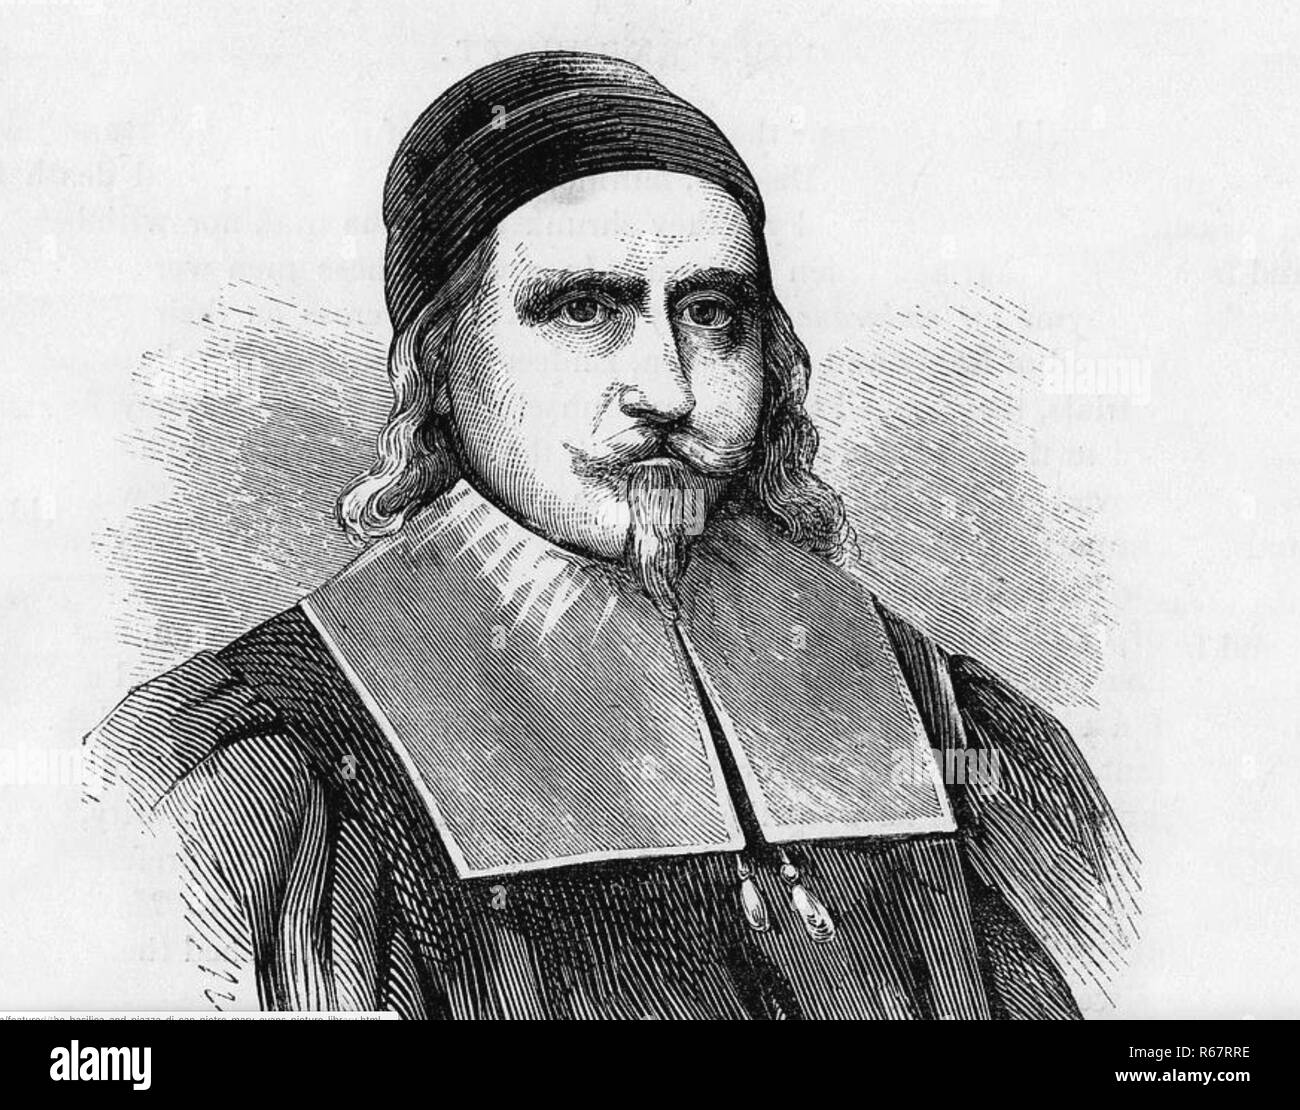 JOHN ENDECOTT (1600-1664/5) English puritan and one of the Fathers of New England - Stock Image